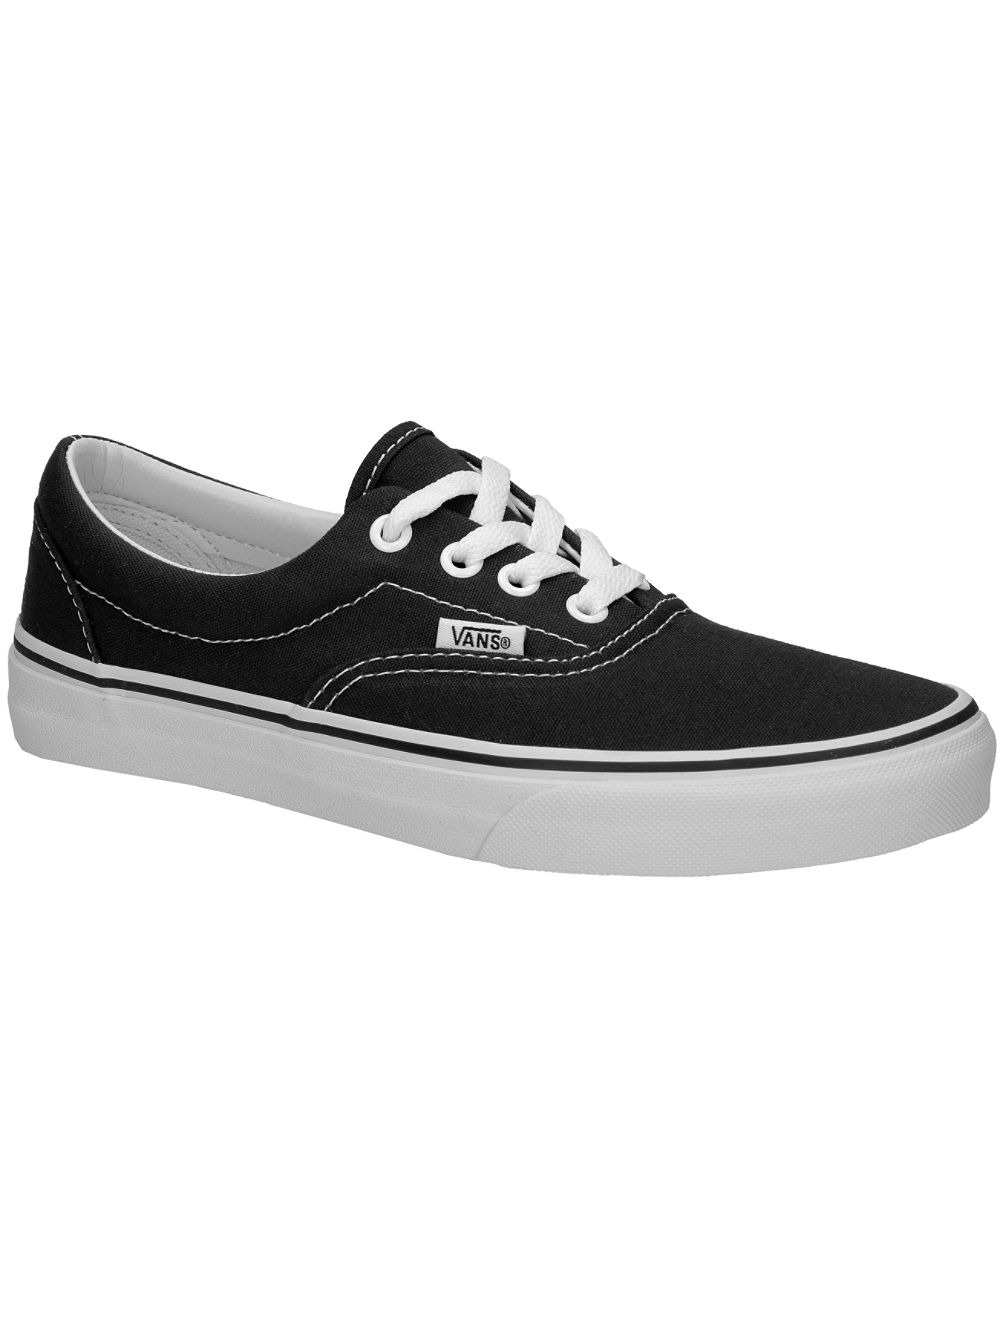 19758616a0 Buy Vans Era Sneakers online at Blue Tomato